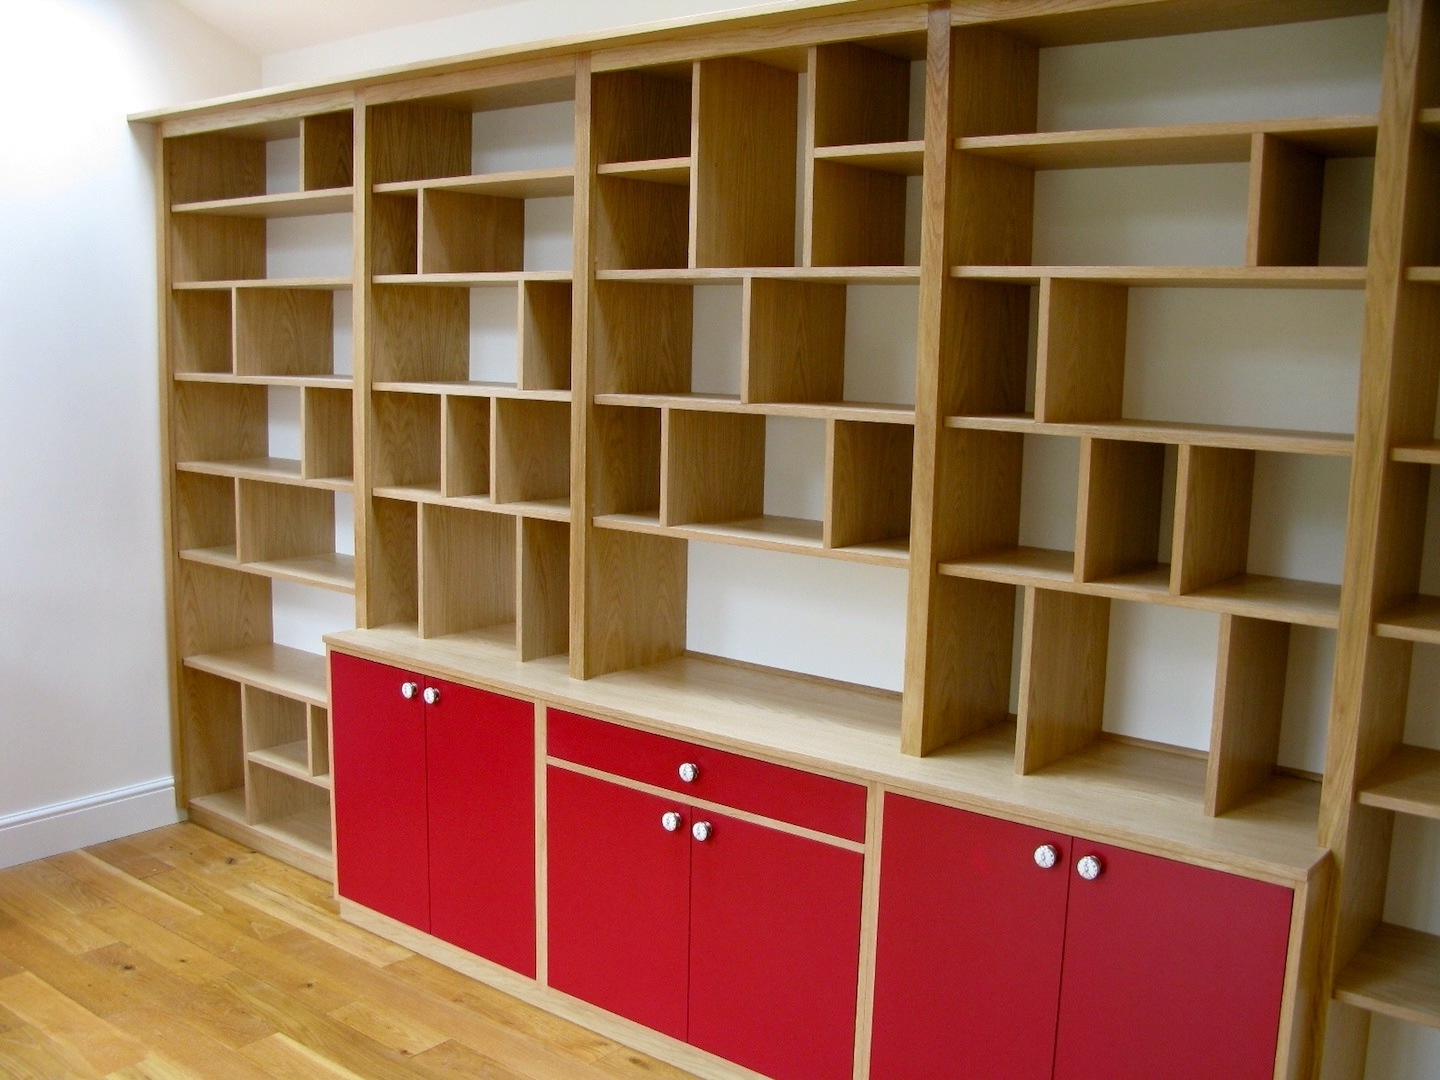 York Carpenters & Cabinet Makers – Fern Manor / Martin Smith With Current Bespoke Shelving (View 15 of 15)